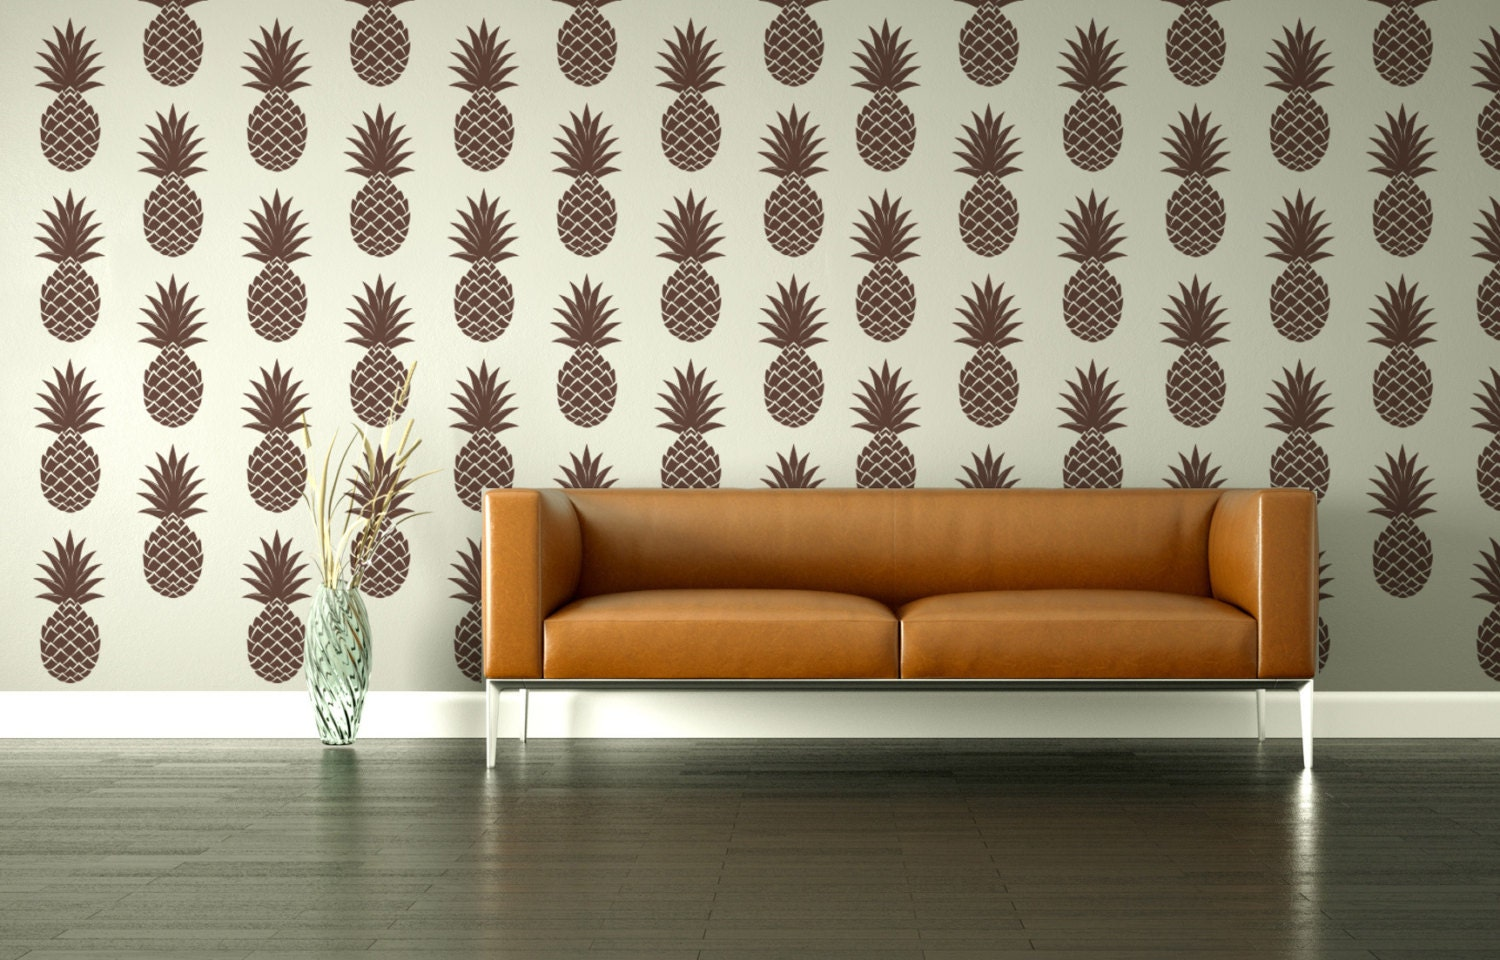 pineapple wall decal retro wall decal pineapple wall decor zoom